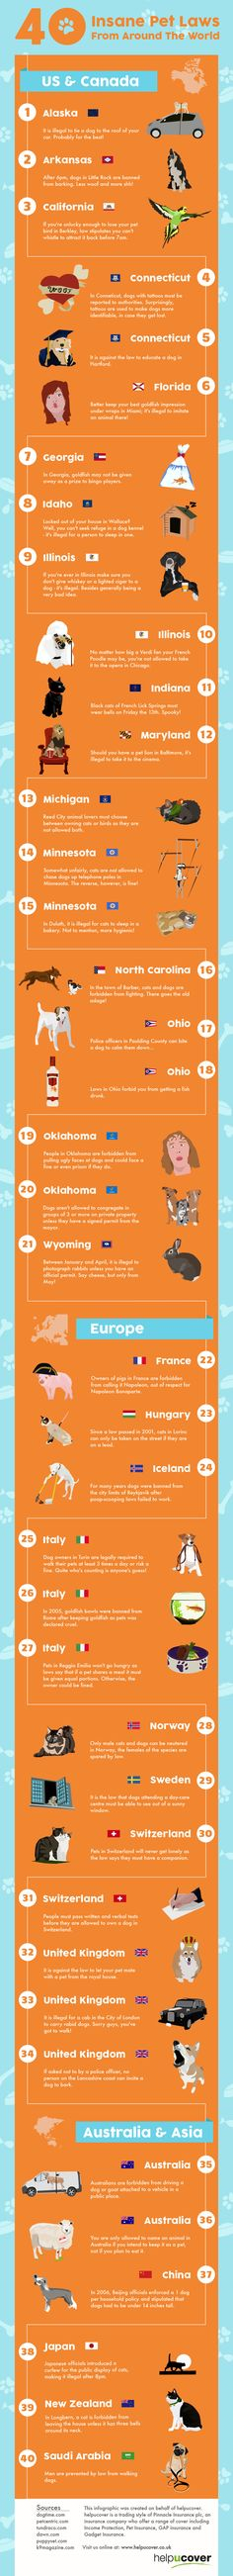 There are some pretty ridiculous laws in the world, but few can match these 40 strange pet laws from around the world, all compiled into a cool infographic. #infographic